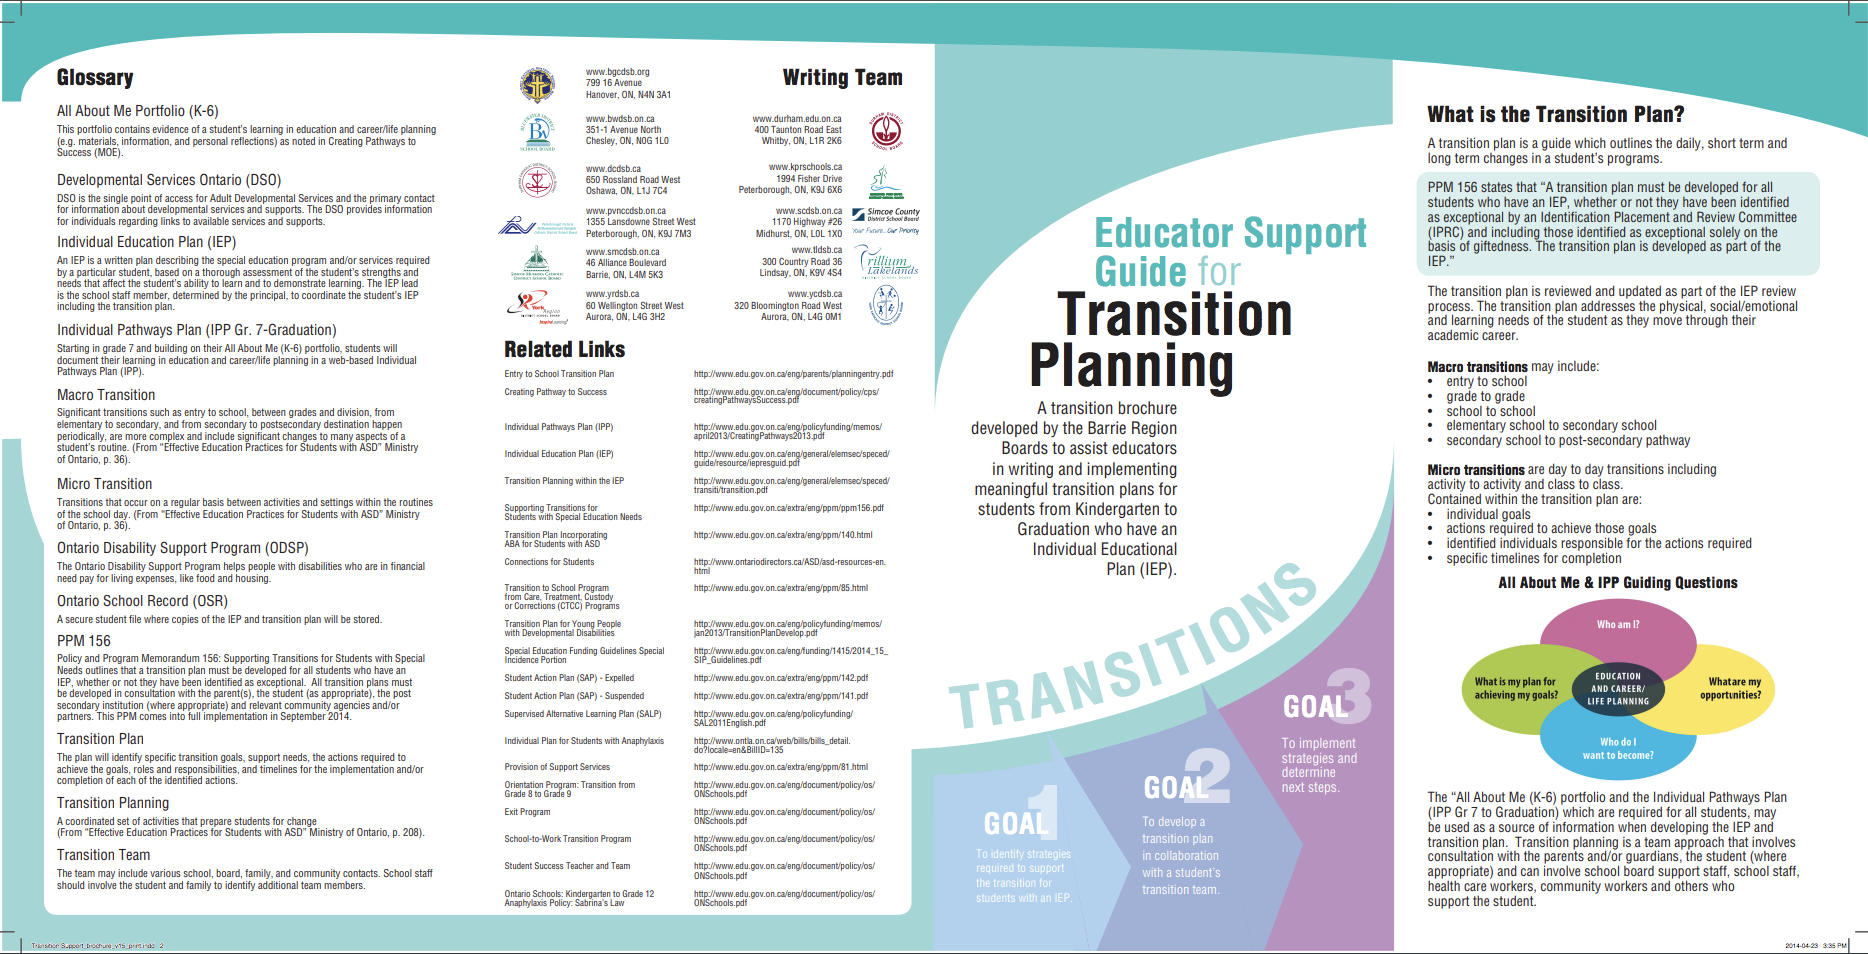 Image of Page 2 of the Educator Support Guide for Transition Planning